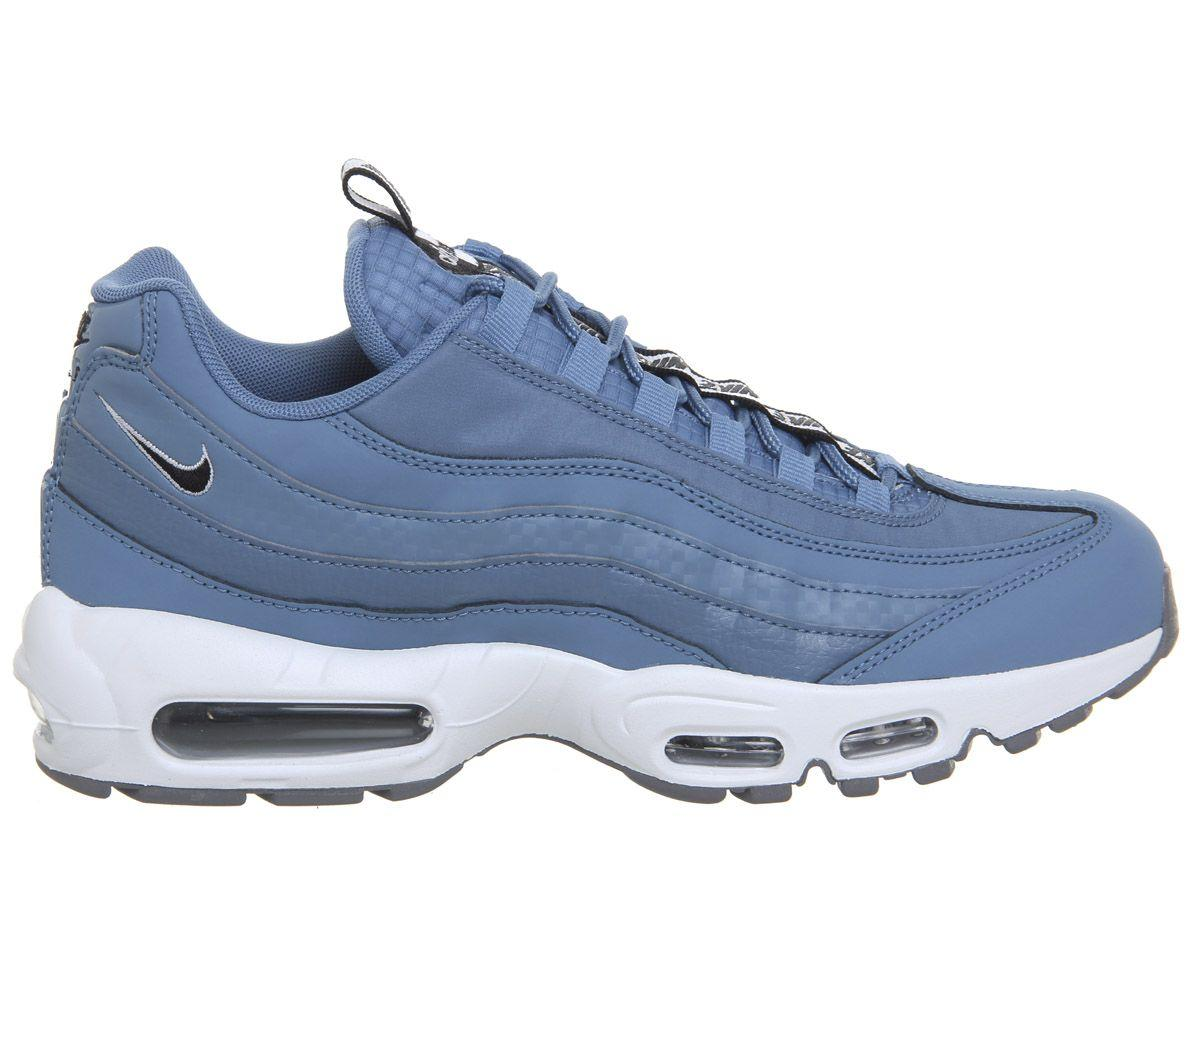 Nike Leather Air Max 95 Trainers in Blue for Men